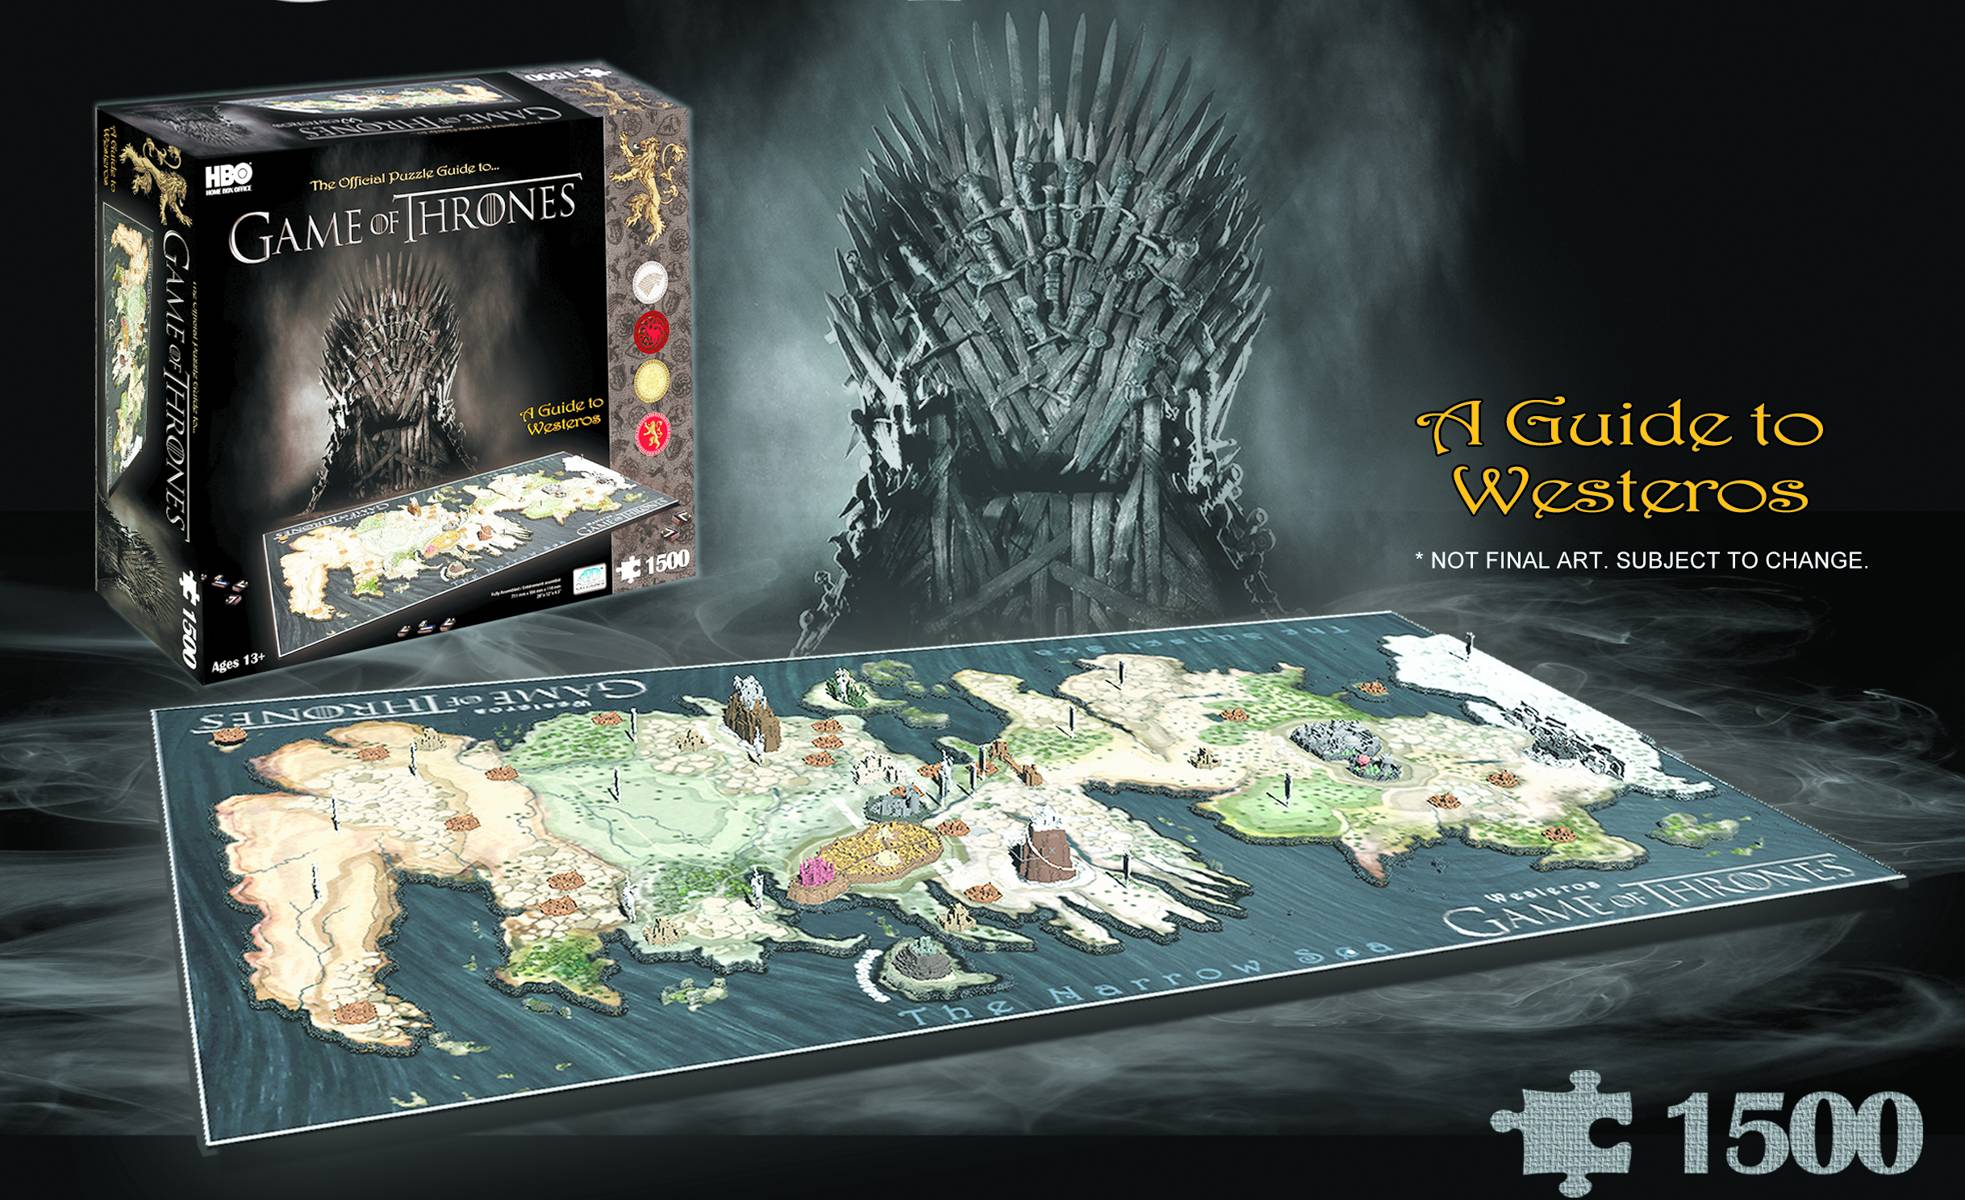 game of thrones map puzzle with Game Of Thrones Mapa De Westeros Representado Em Um Magnifico Quebra Cabeca 4d on What Are The Iconic Mapscartography To  e From The RPGfantasyMMO Genre as well File Krk waterfalls also Game Of Thrones Wallpaper also Game Of Thrones Mapa De Westeros Representado Em Um Magnifico Quebra Cabeca 4d additionally Monemvasia Videos.